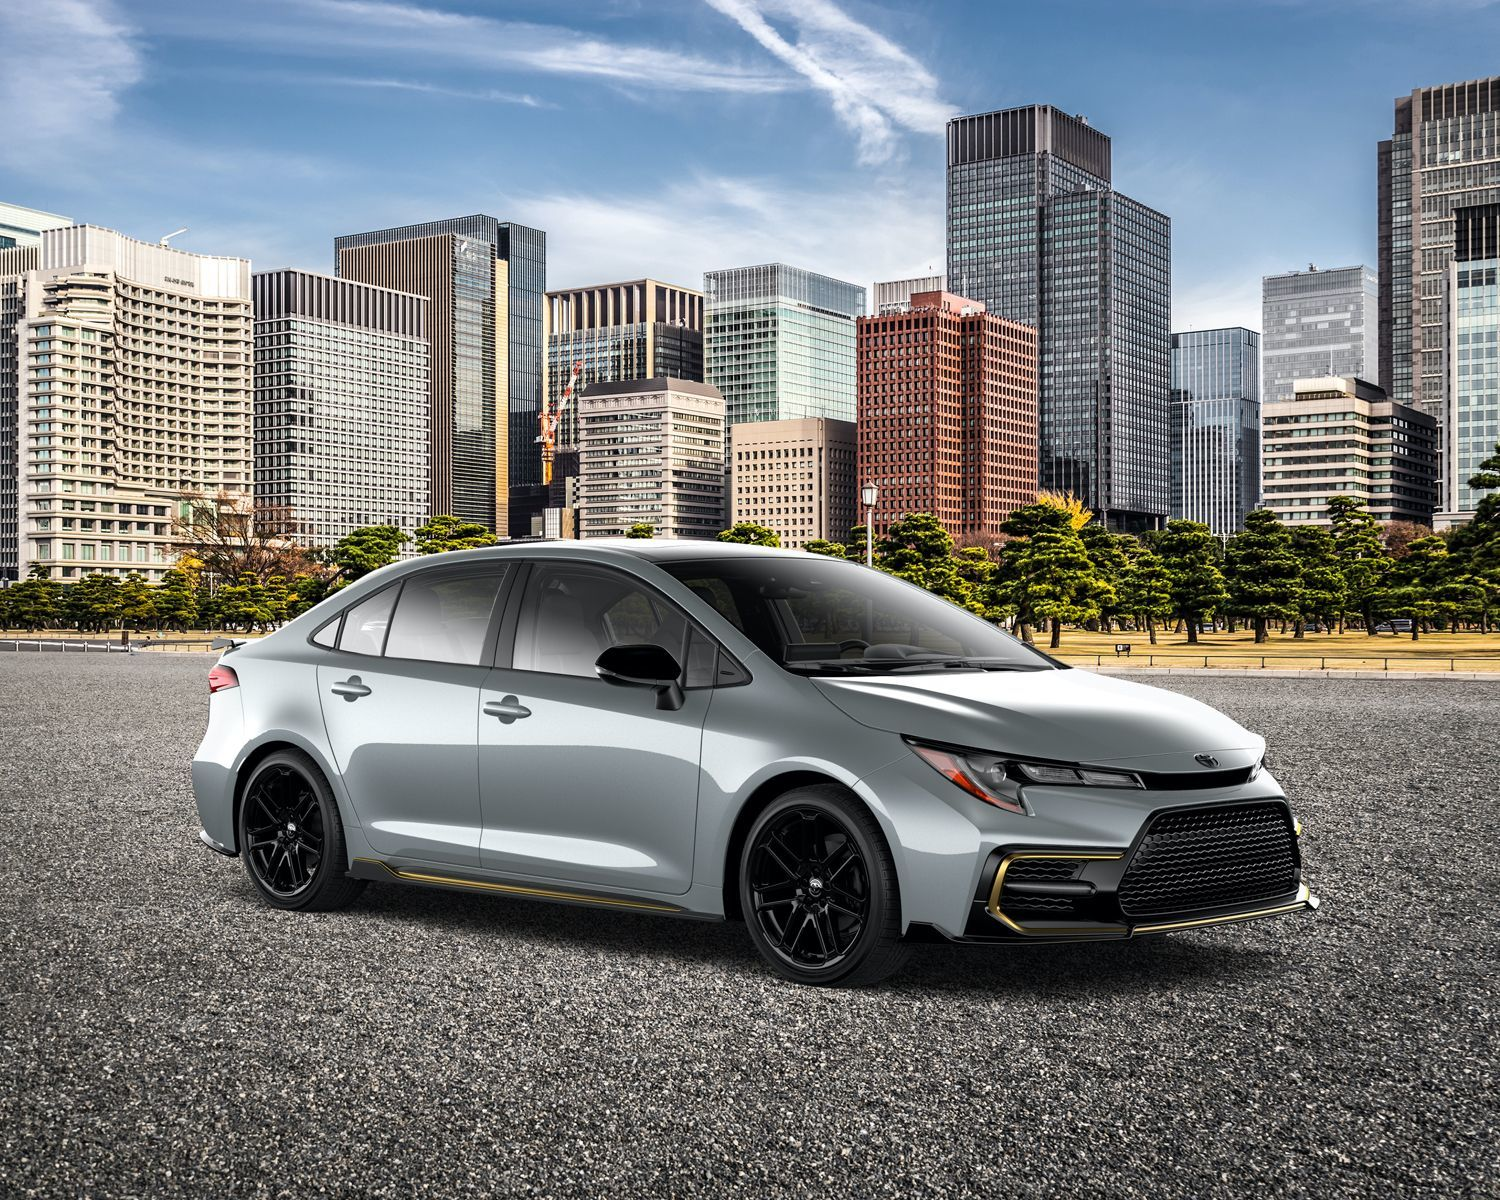 New Apex Edition Option Package in Cement Grey